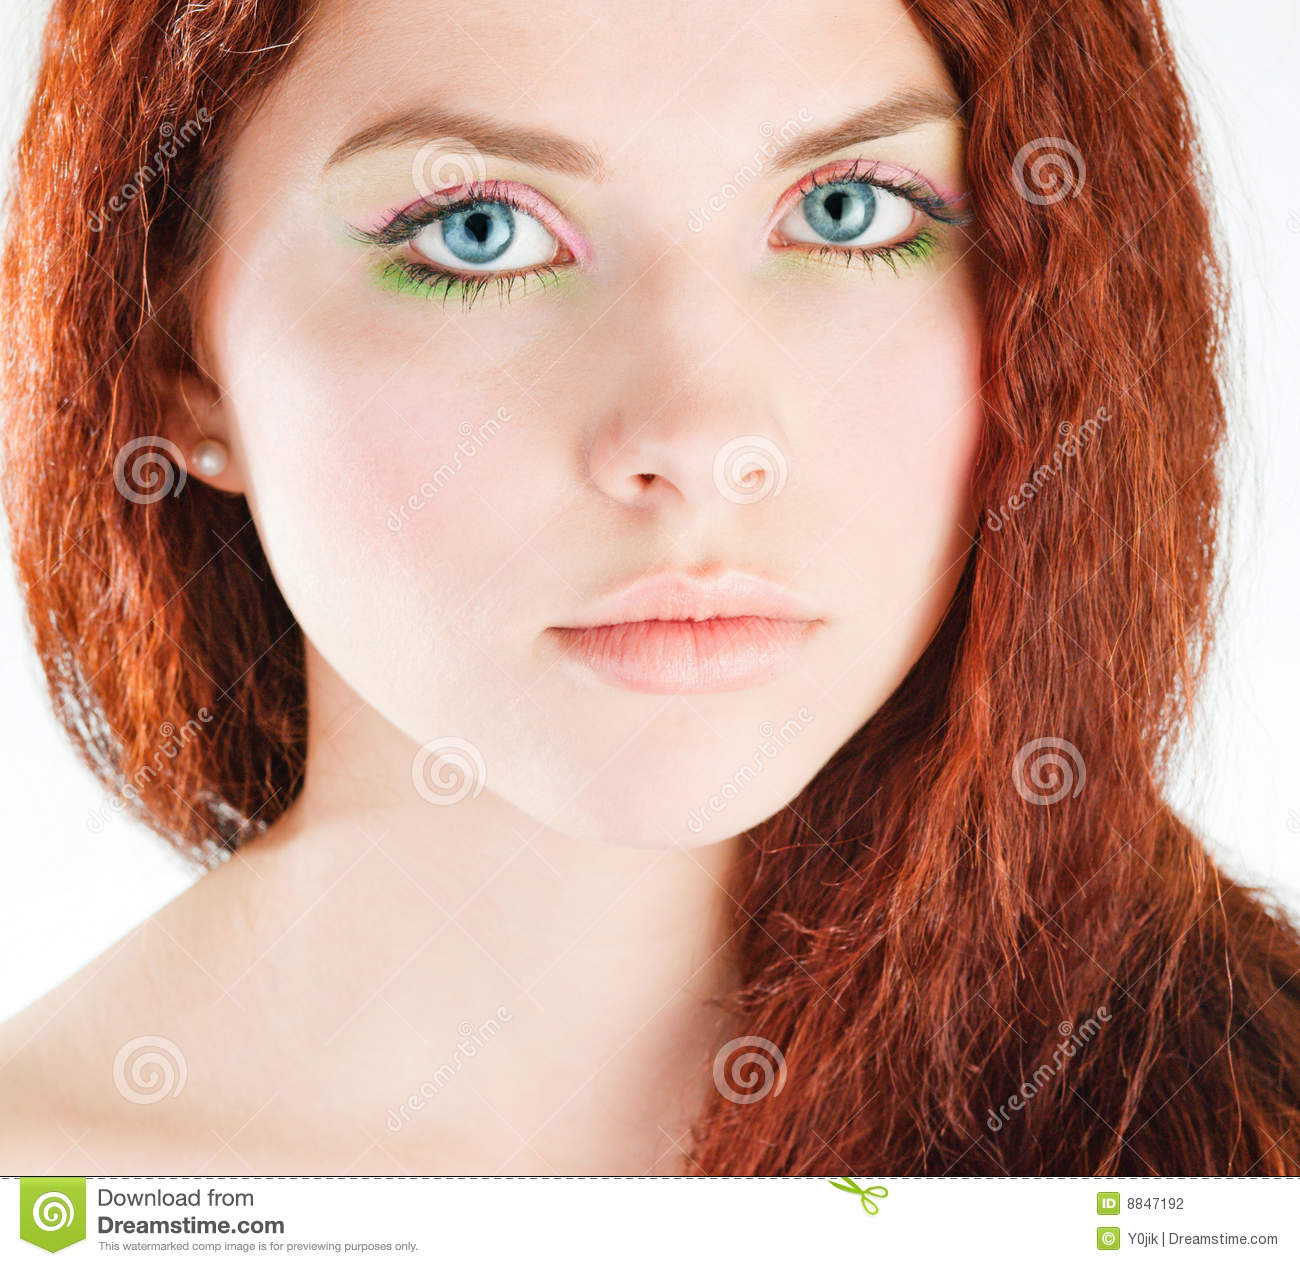 Whom can Young girl with red hair good result